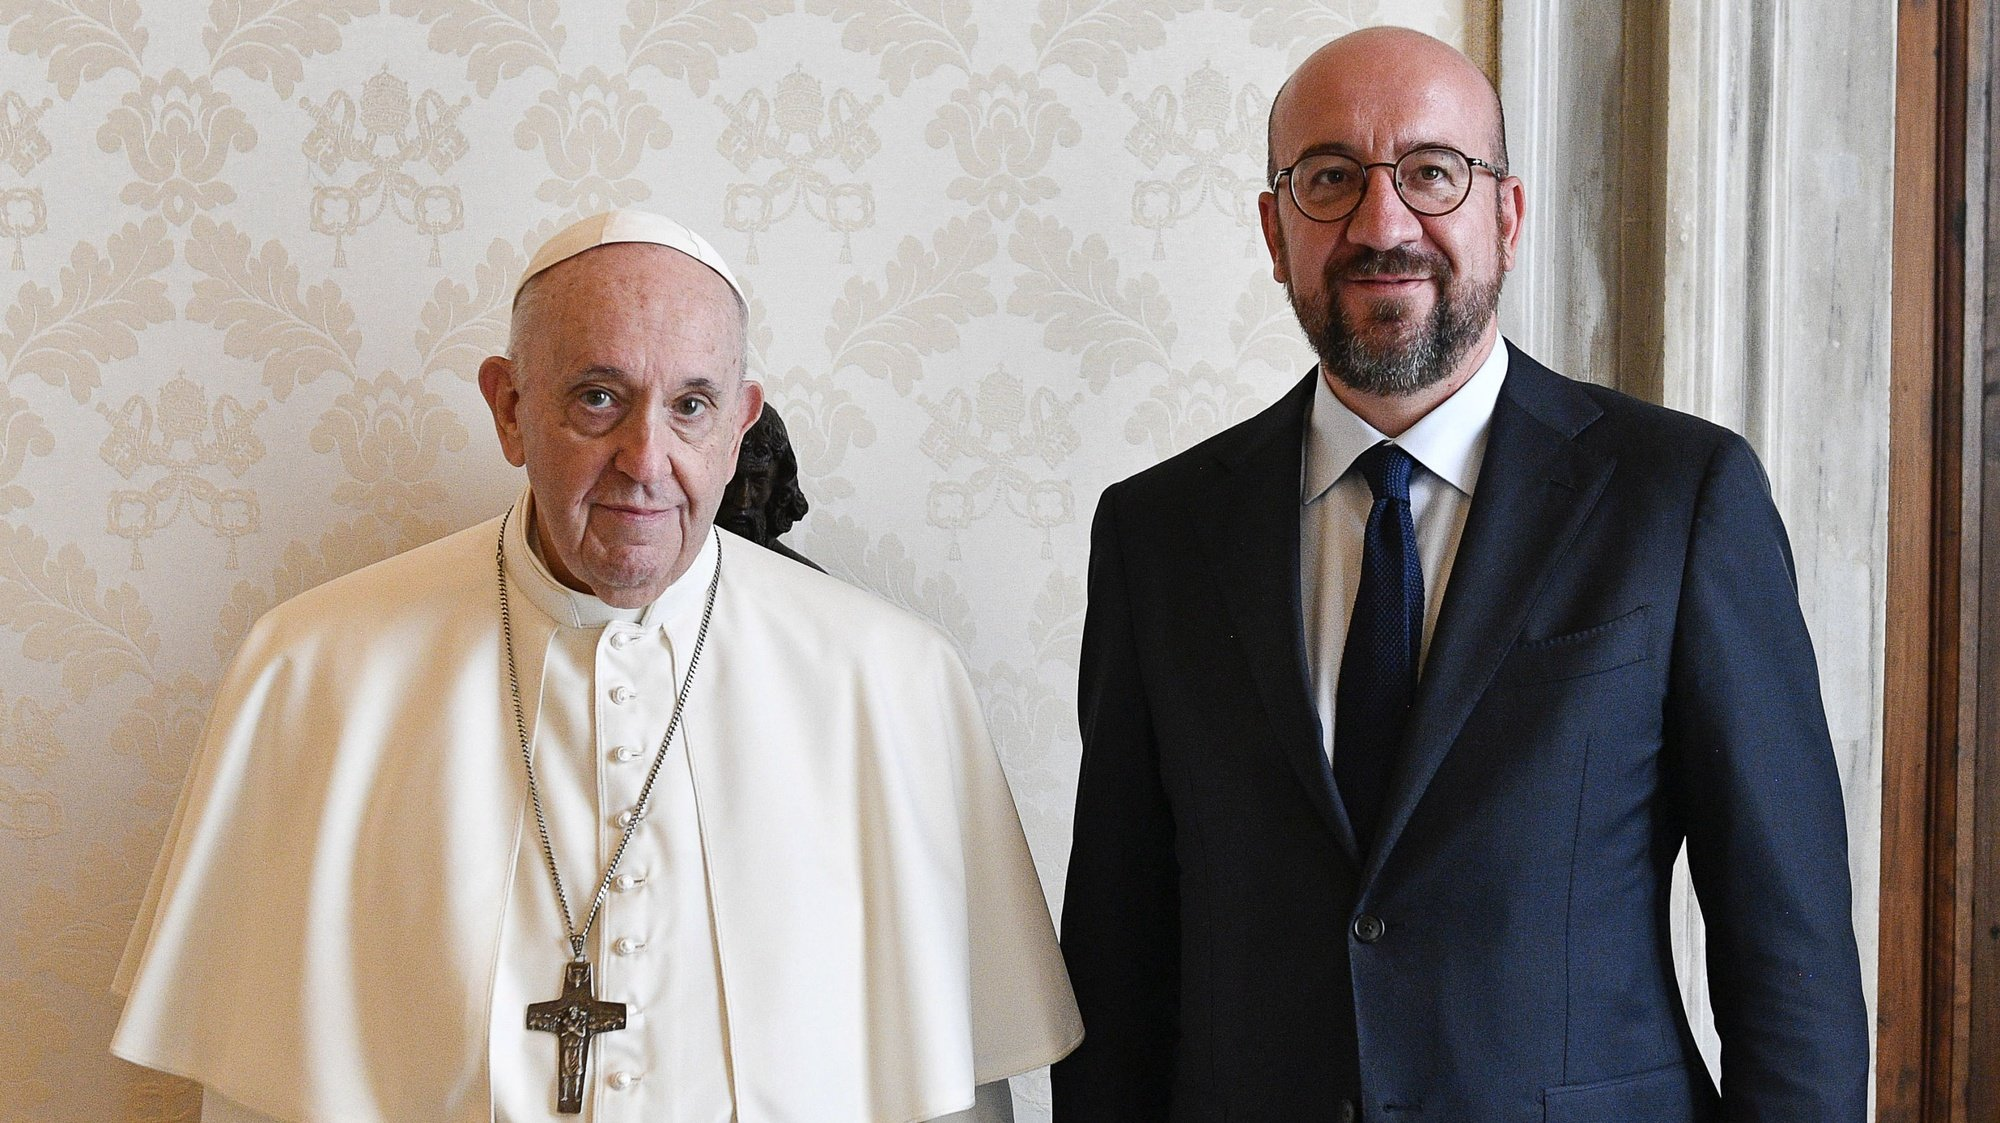 epa09460685 A handout picture provided by the Vatican Media shows Pope Francis (L) and European Council President Charles Michel (R) posing for a photograph during their meeting in Vatican City, 11 September 2021.  EPA/VATICAN MEDIA HANDOUT  HANDOUT EDITORIAL USE ONLY/NO SALES